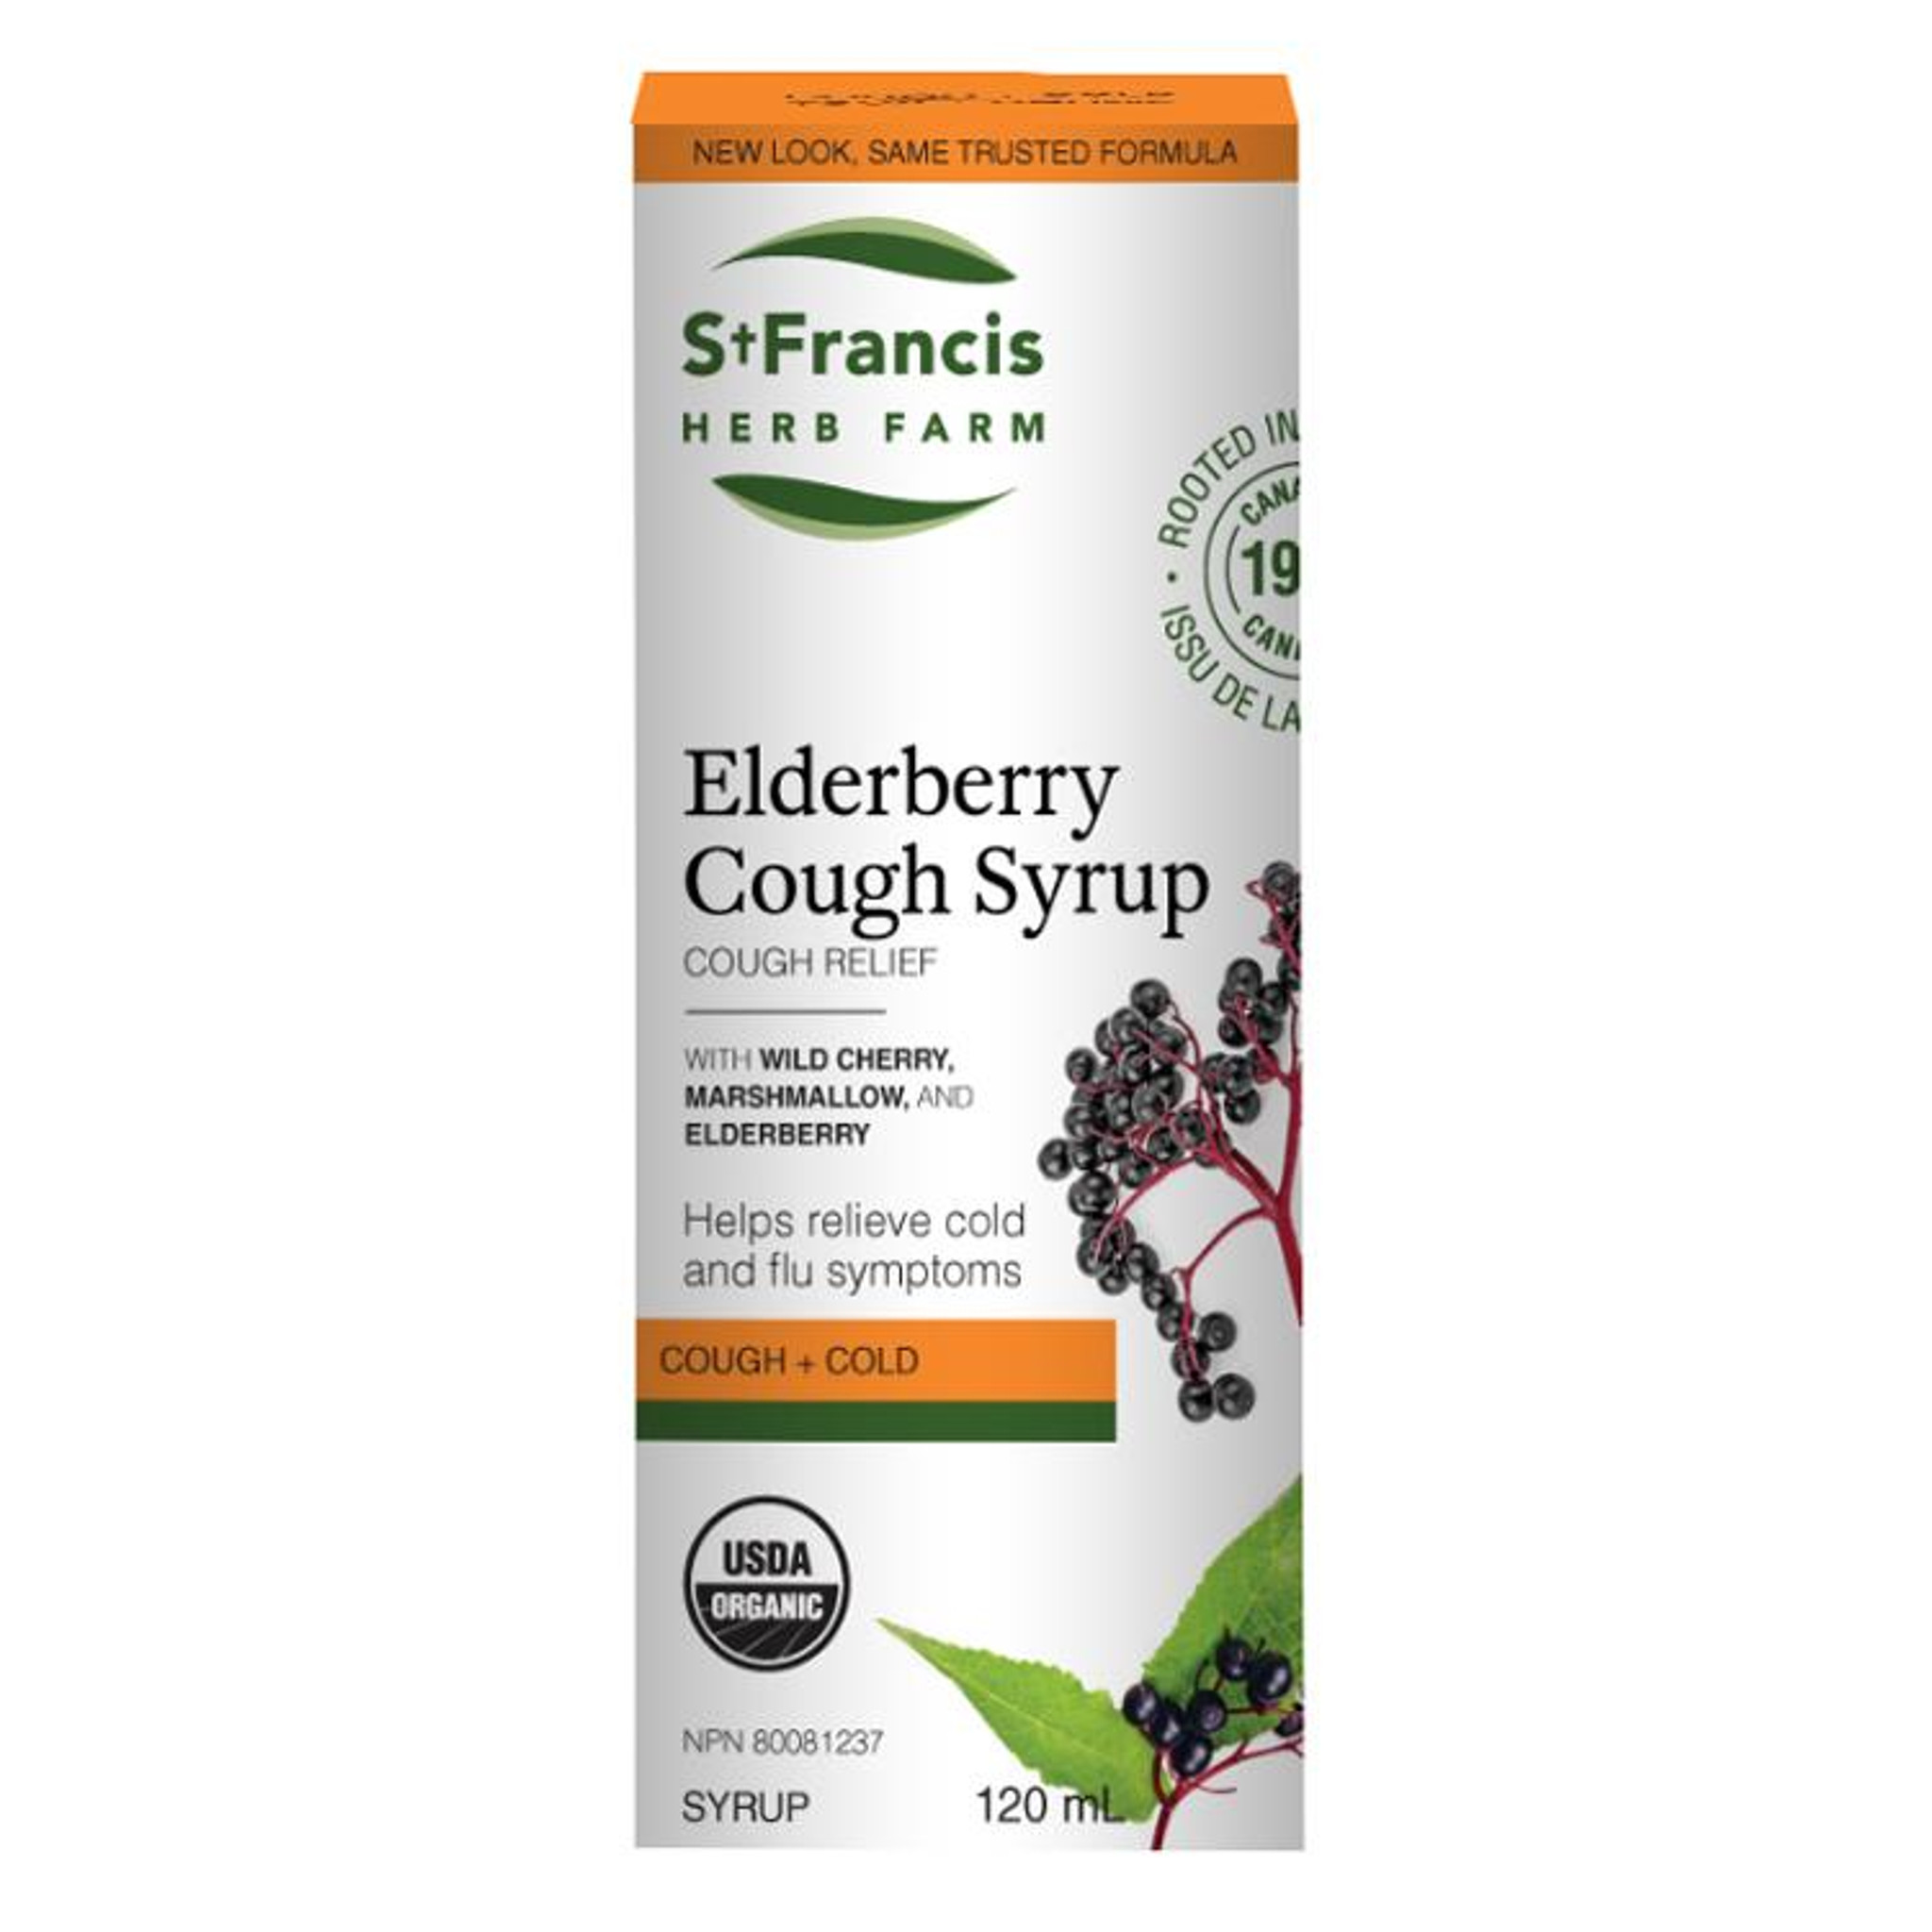 St Francis Elderberry Cough Syrup For Adults Nest